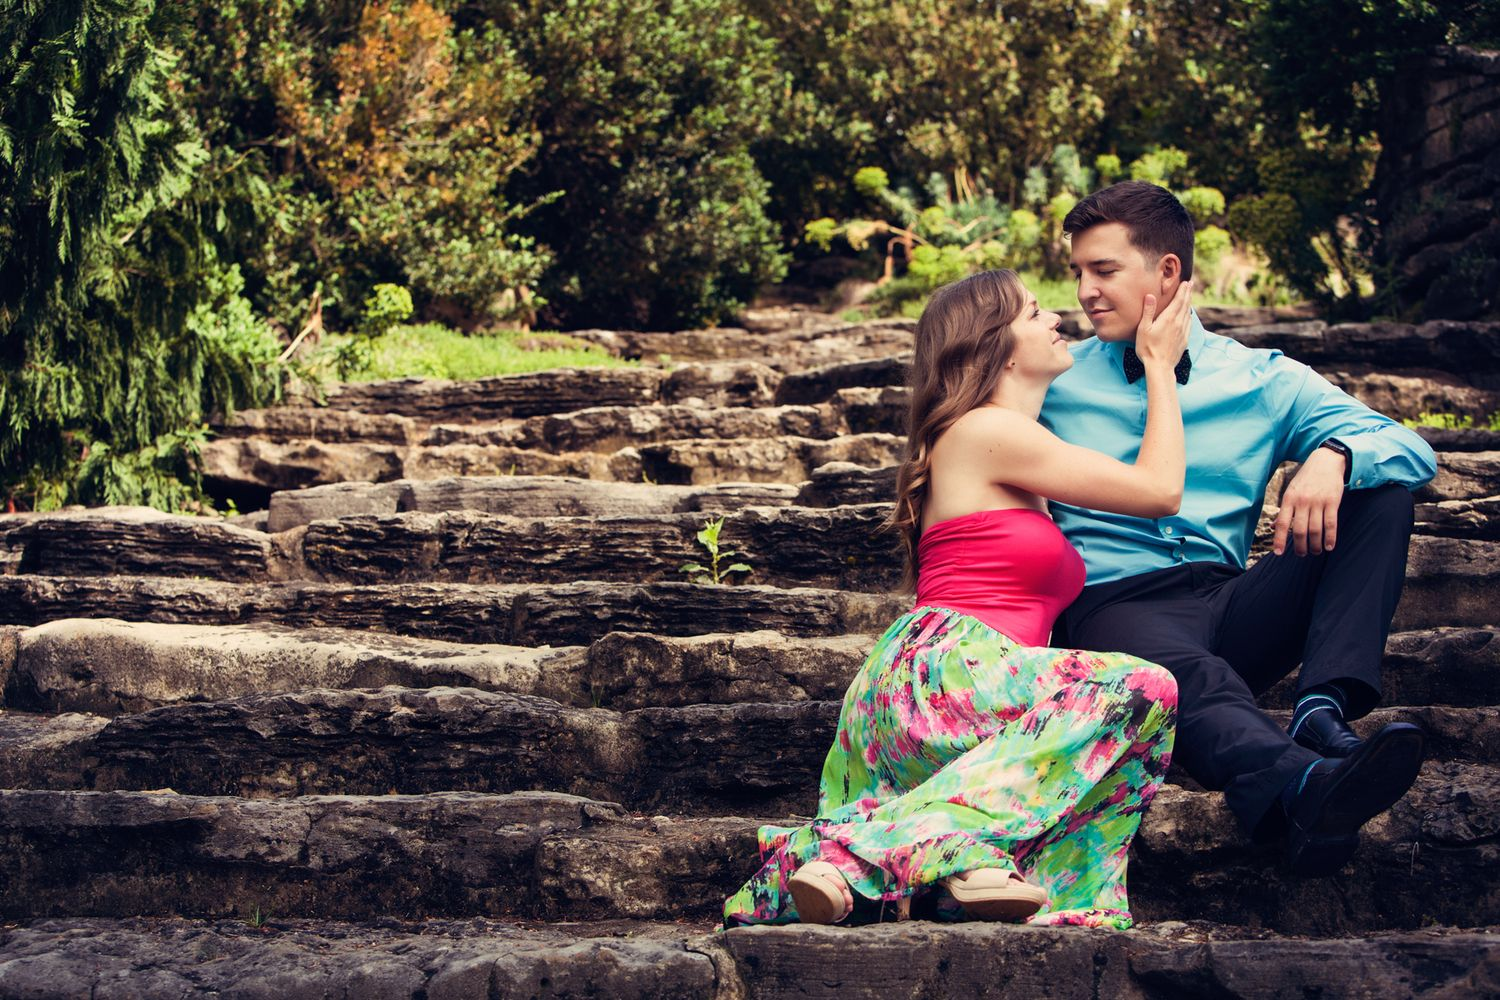 Nashville Engagement Photo #Nashville #Engagement #photo #photos #wedding #photographer #cheekwoodgardens